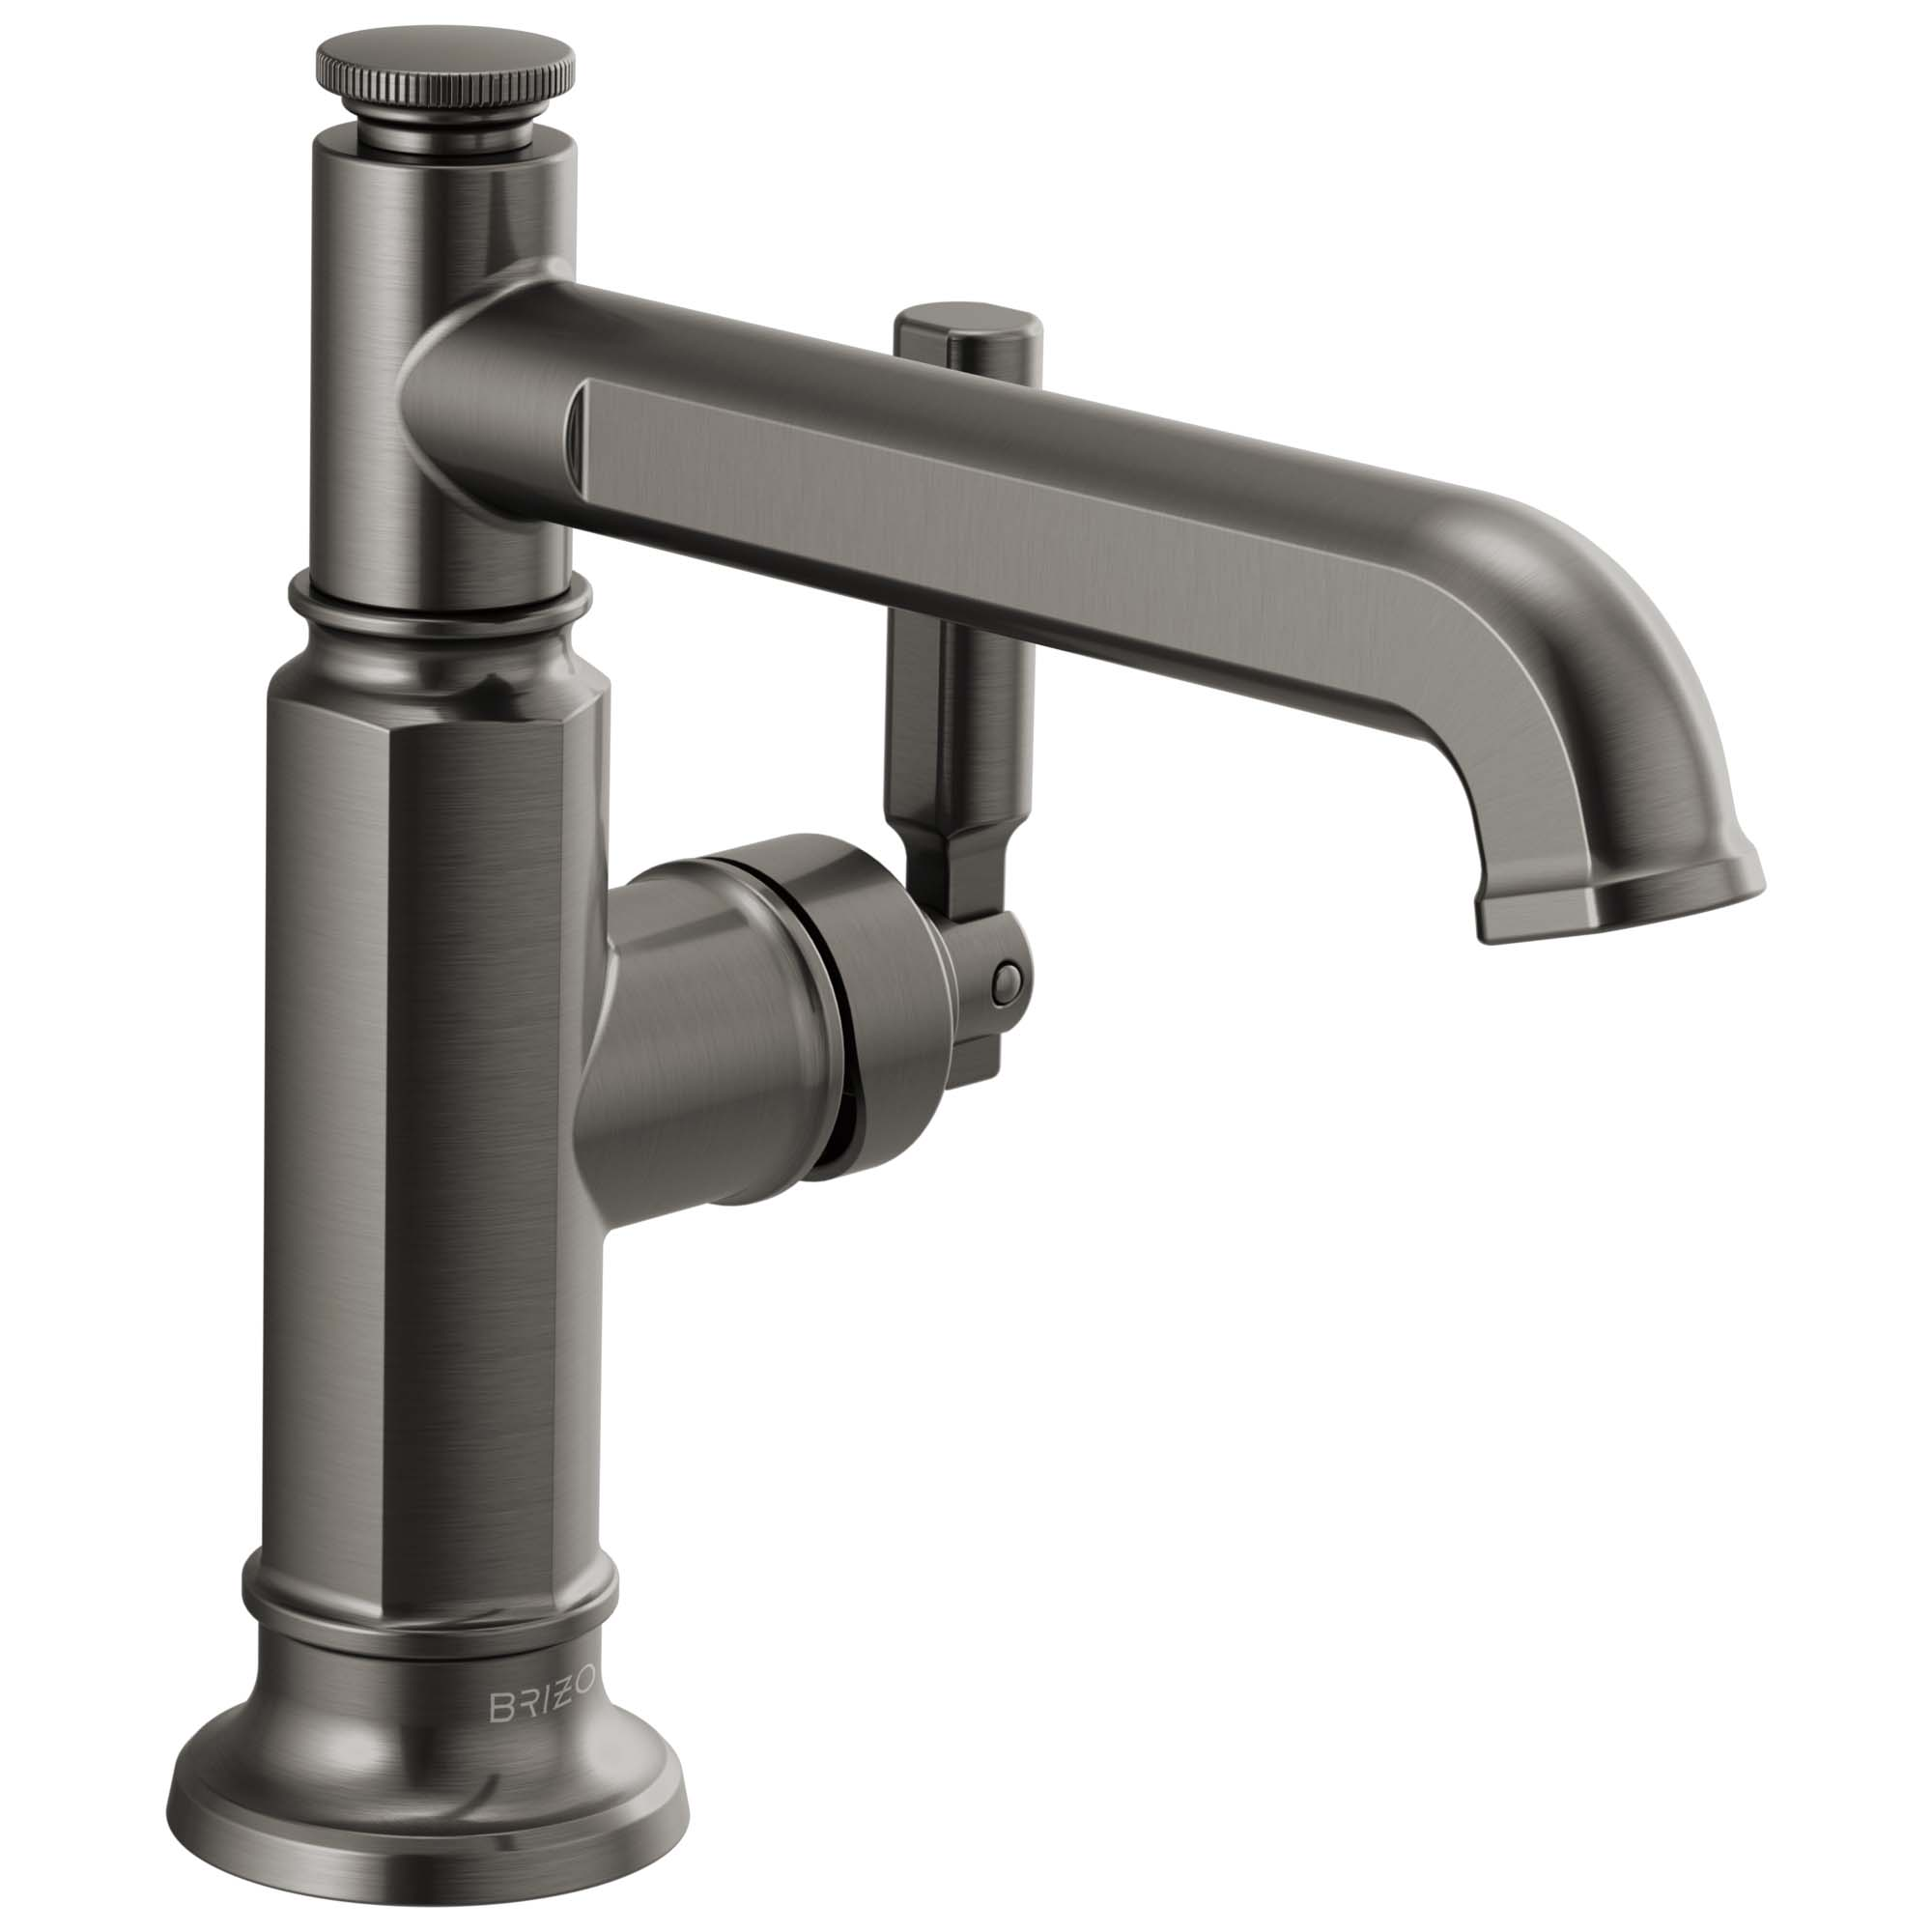 Brizo 65076LF-SL Brizo Invari: Single-Handle Lavatory Faucet - Luxe Steel